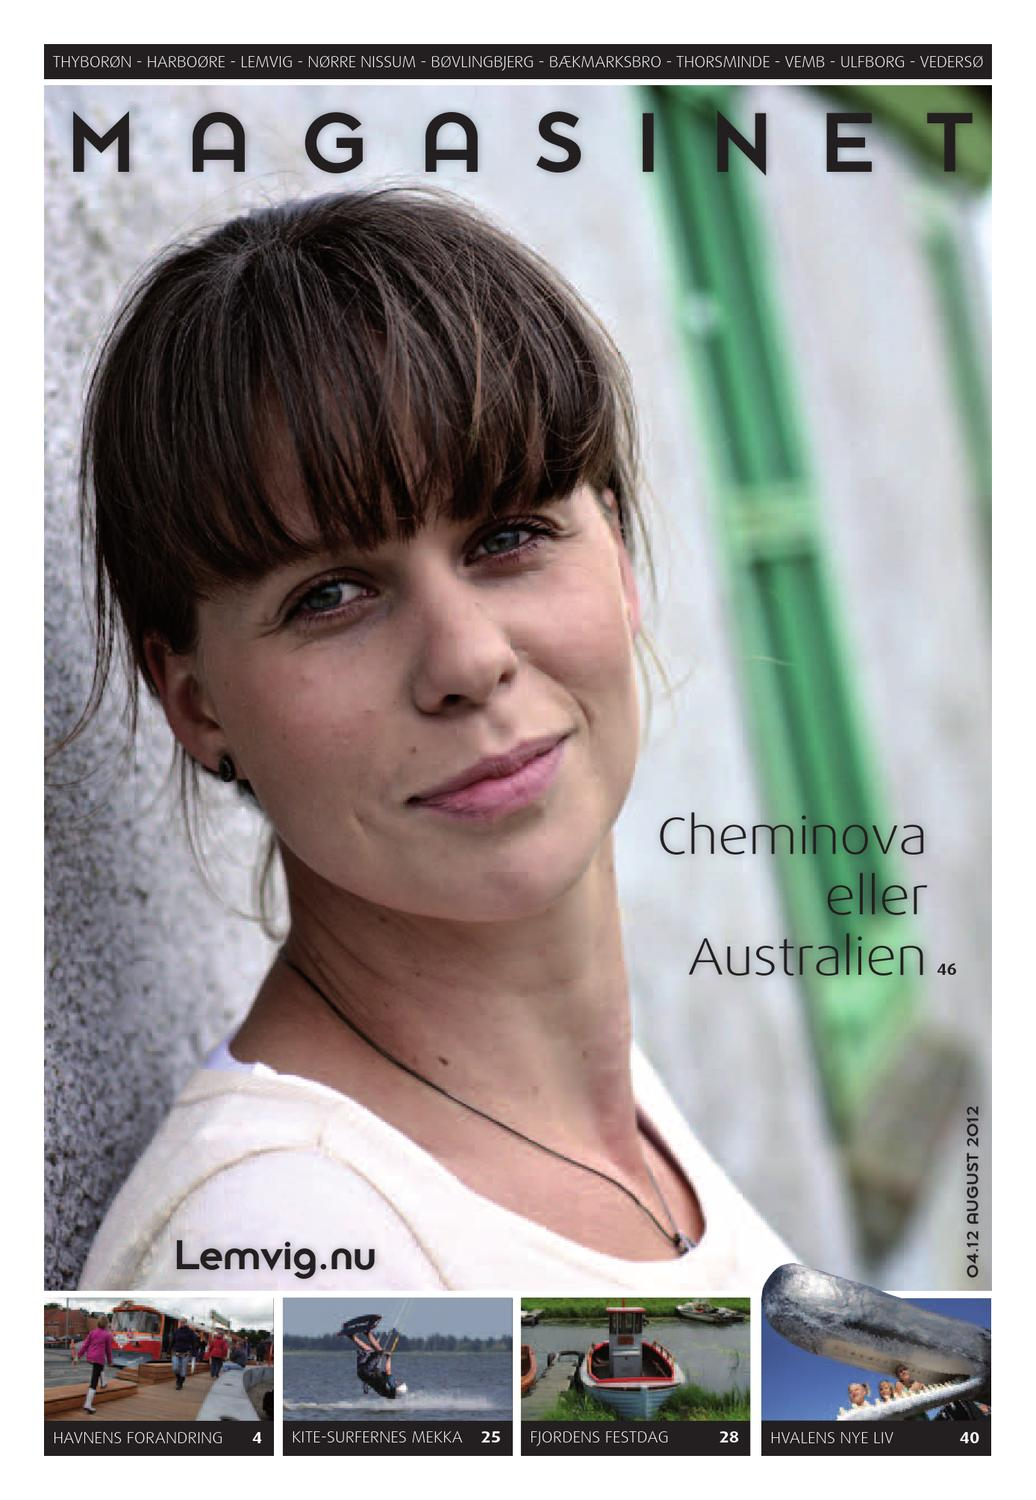 Magasinet Lemvig 0412 August by COMPLOT - issuu